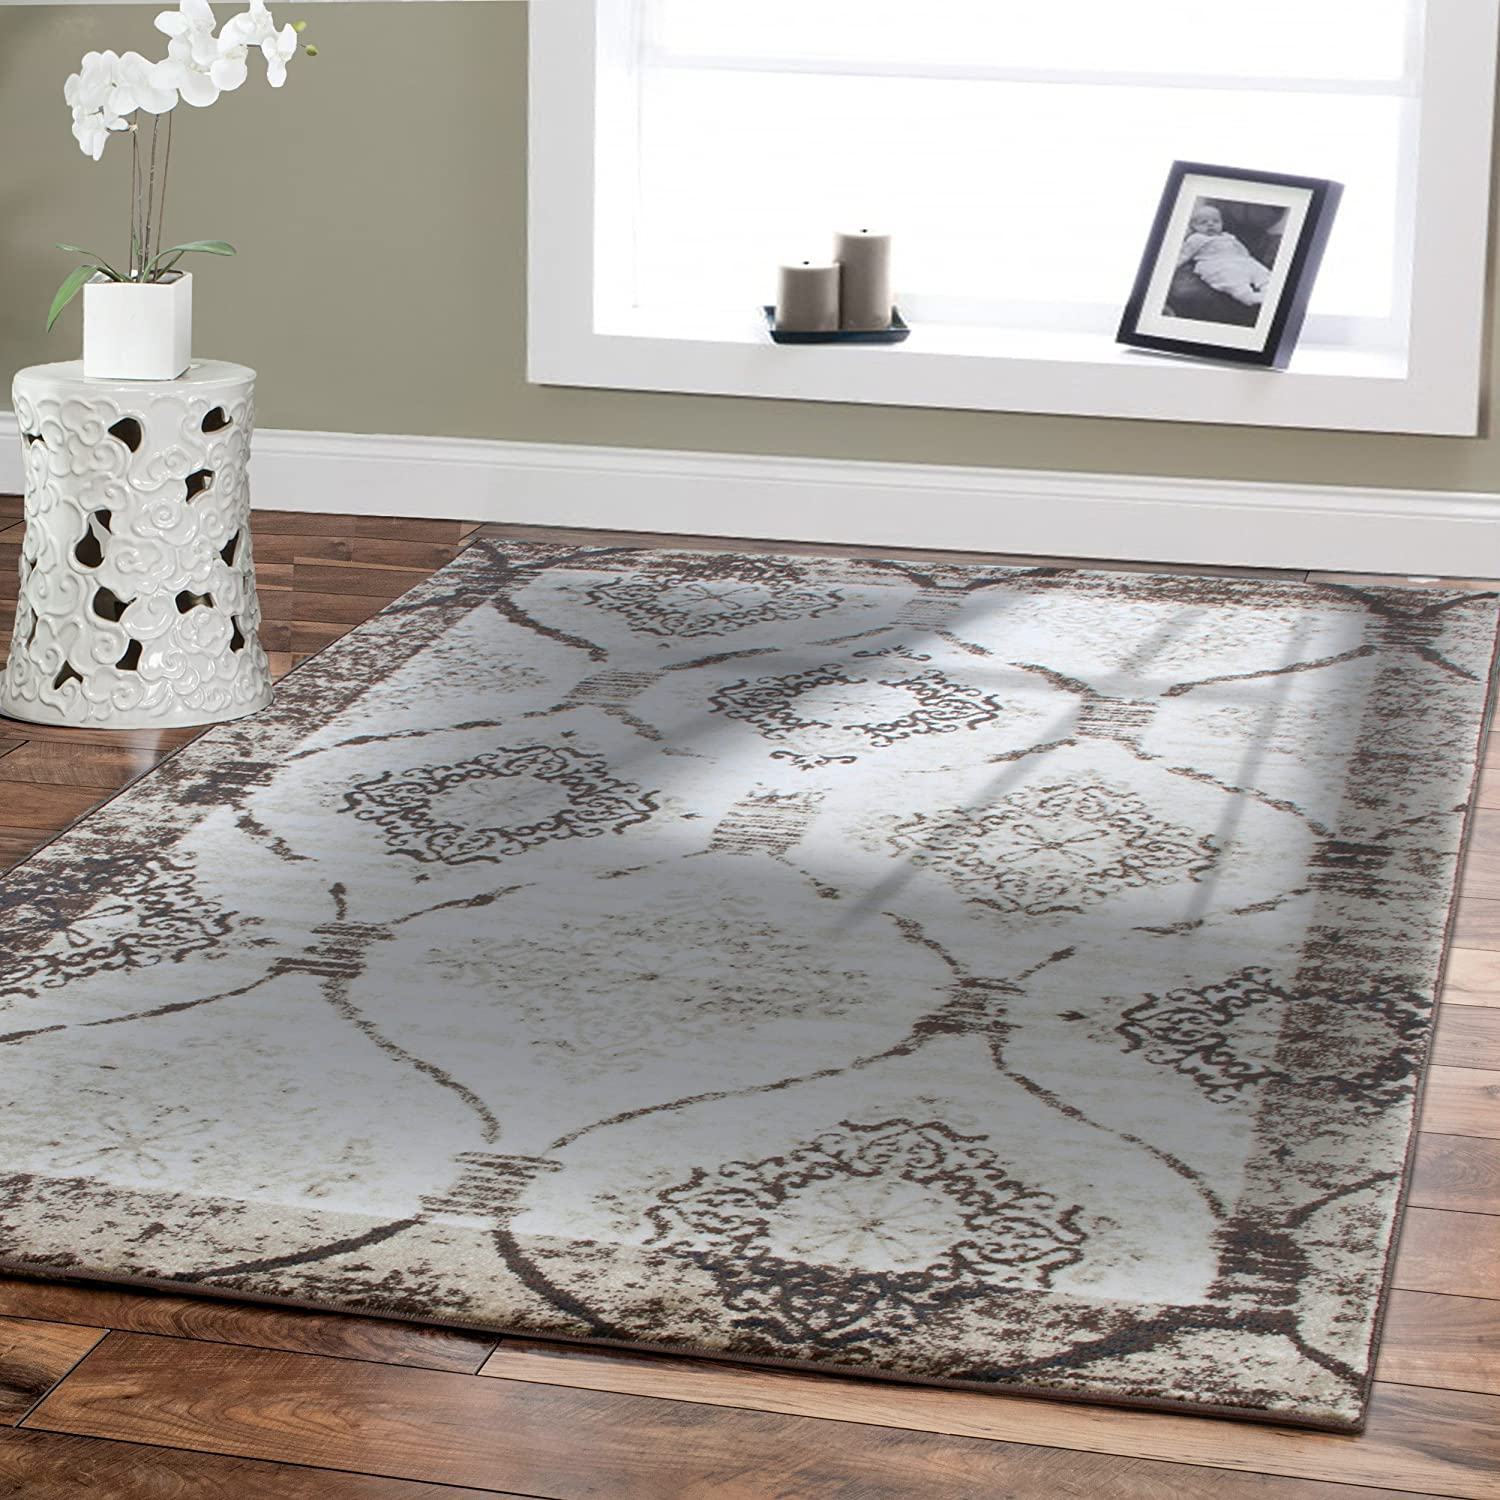 Amazon.com: Large 8x11 Modern Rugs For Living Room Cream Rug 8x10 Rugs  Diamond Shape Black Cream Brown Contemporary Area Rug 8 By 10 Clearance  Under 100: ...